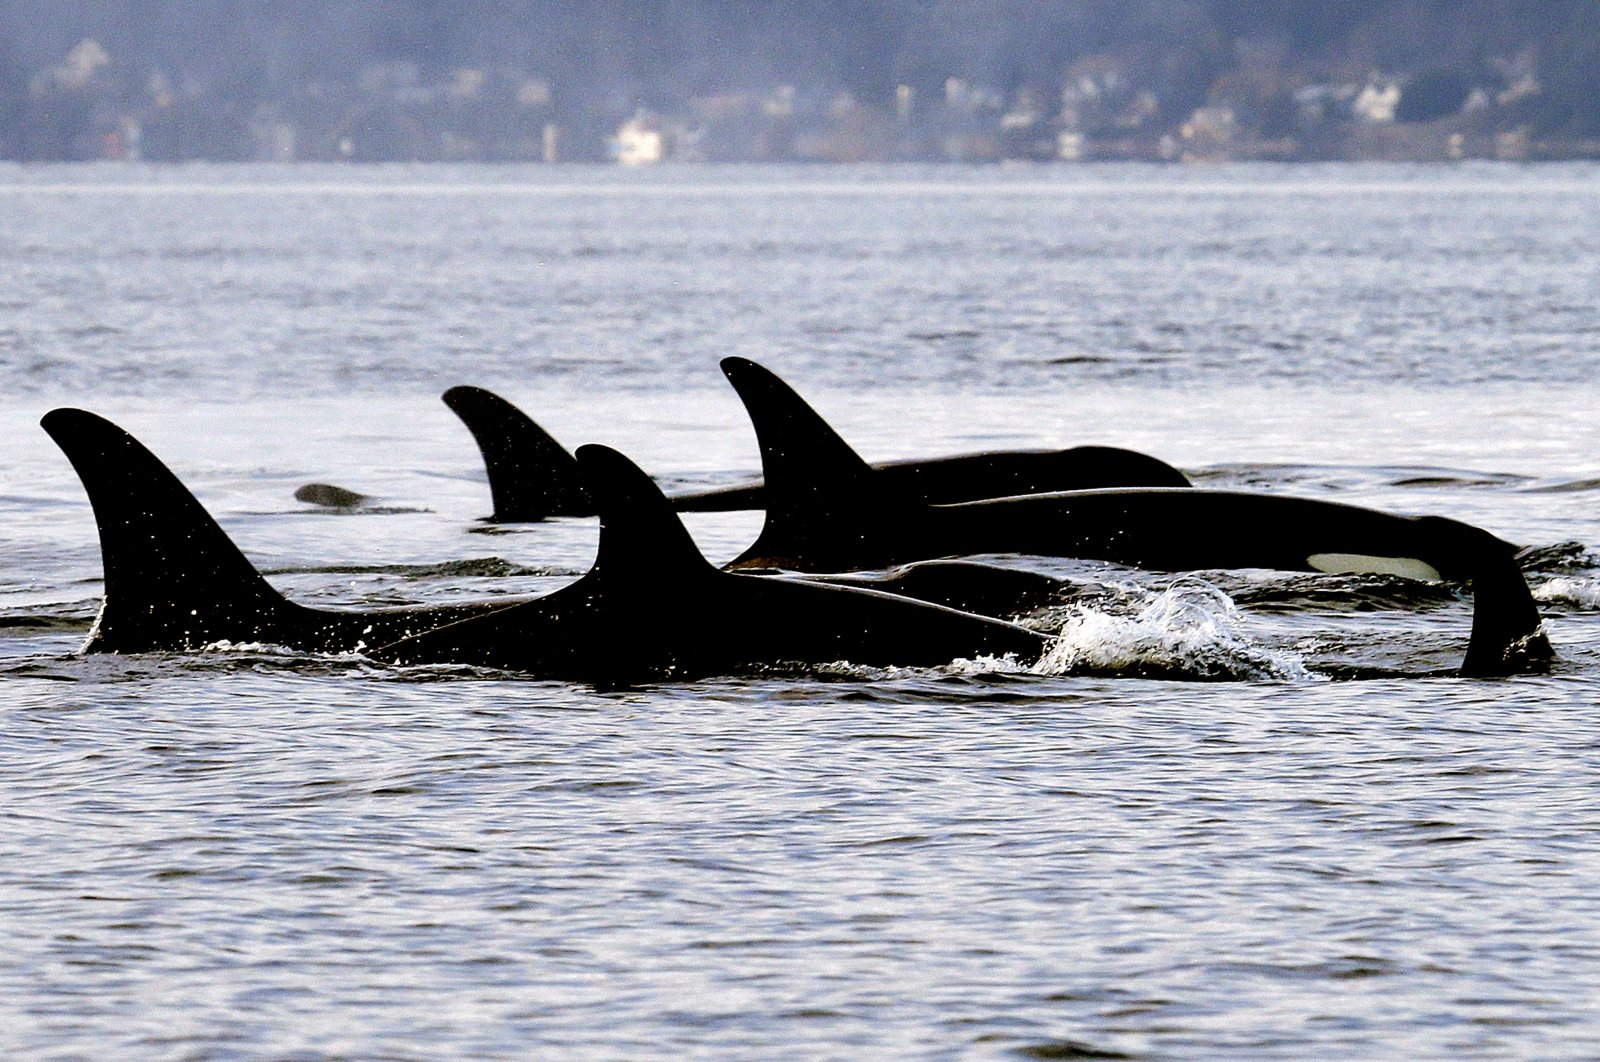 In this Jan. 18, 2014, file photo, endangered orcas from the J pod swim in Puget Sound west of Seattle, U.S., as seen from a federal research vessel that had been tracking the whales. (AP Photo)